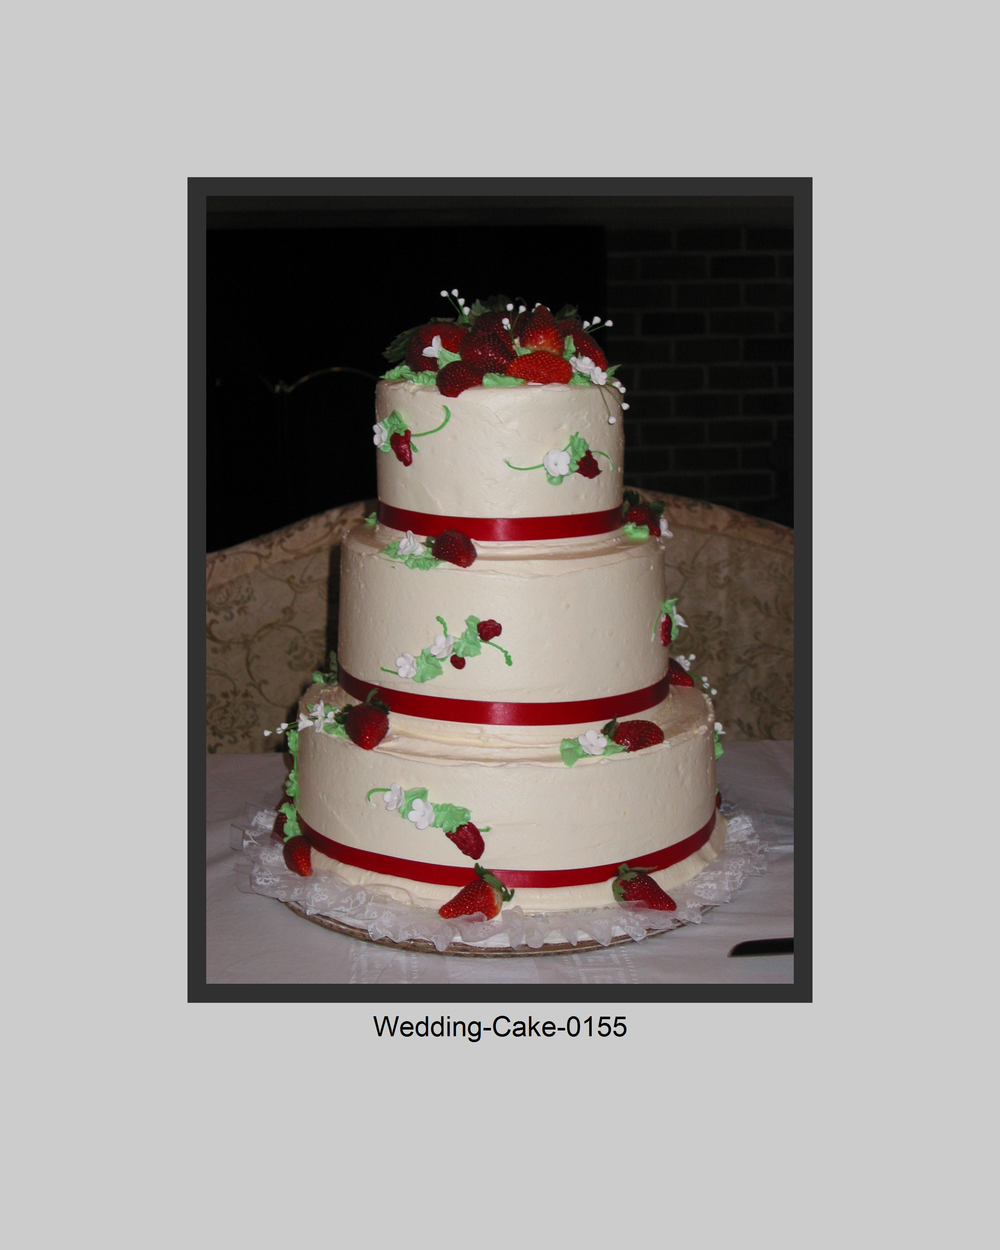 Wedding-Cake-Prints-0155.jpg